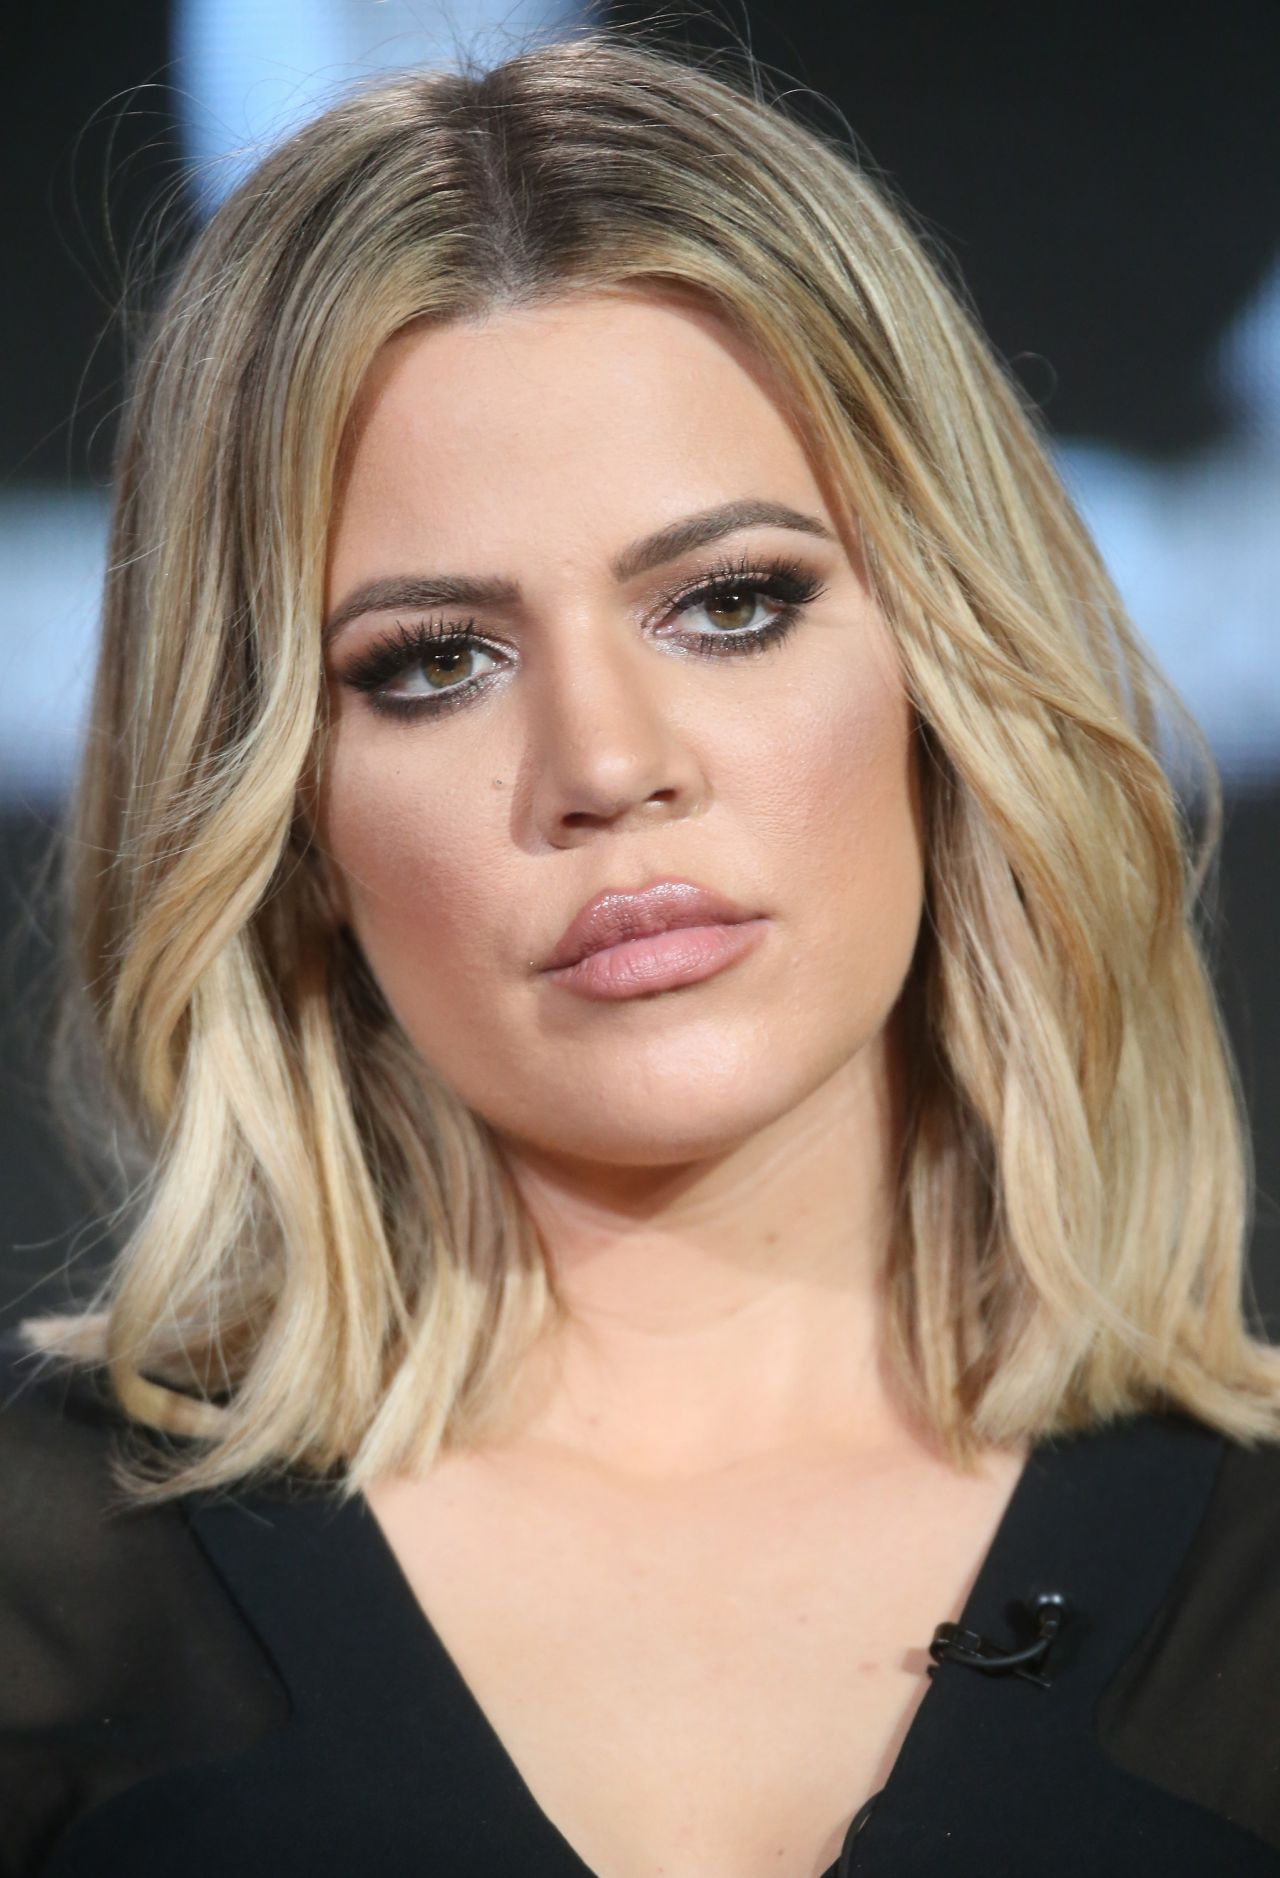 khloe kardashian - photo #6